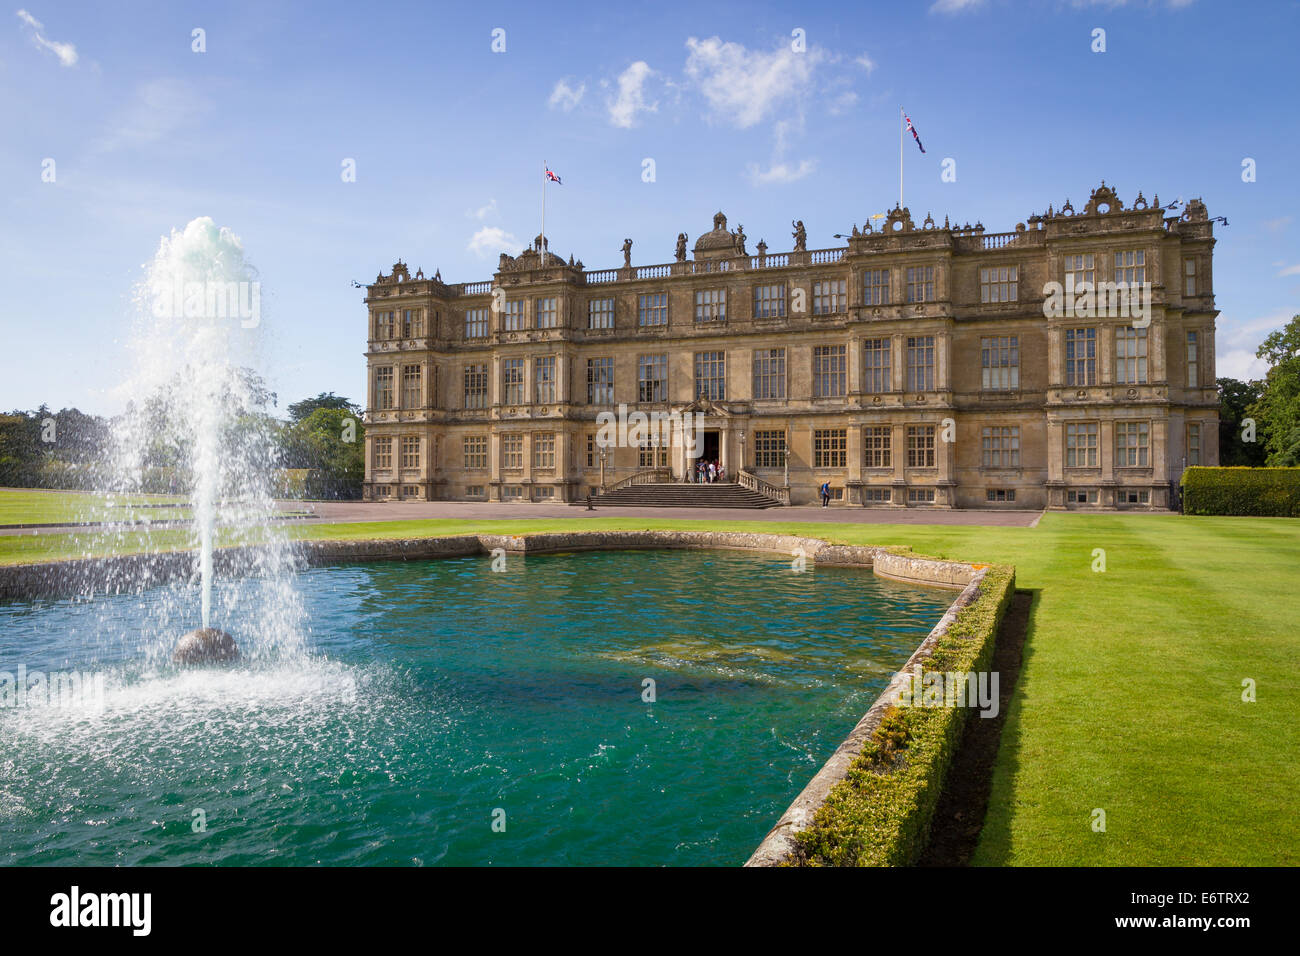 Longleat House with lawn and fountain. Warminster, Wiltshire. - Stock Image